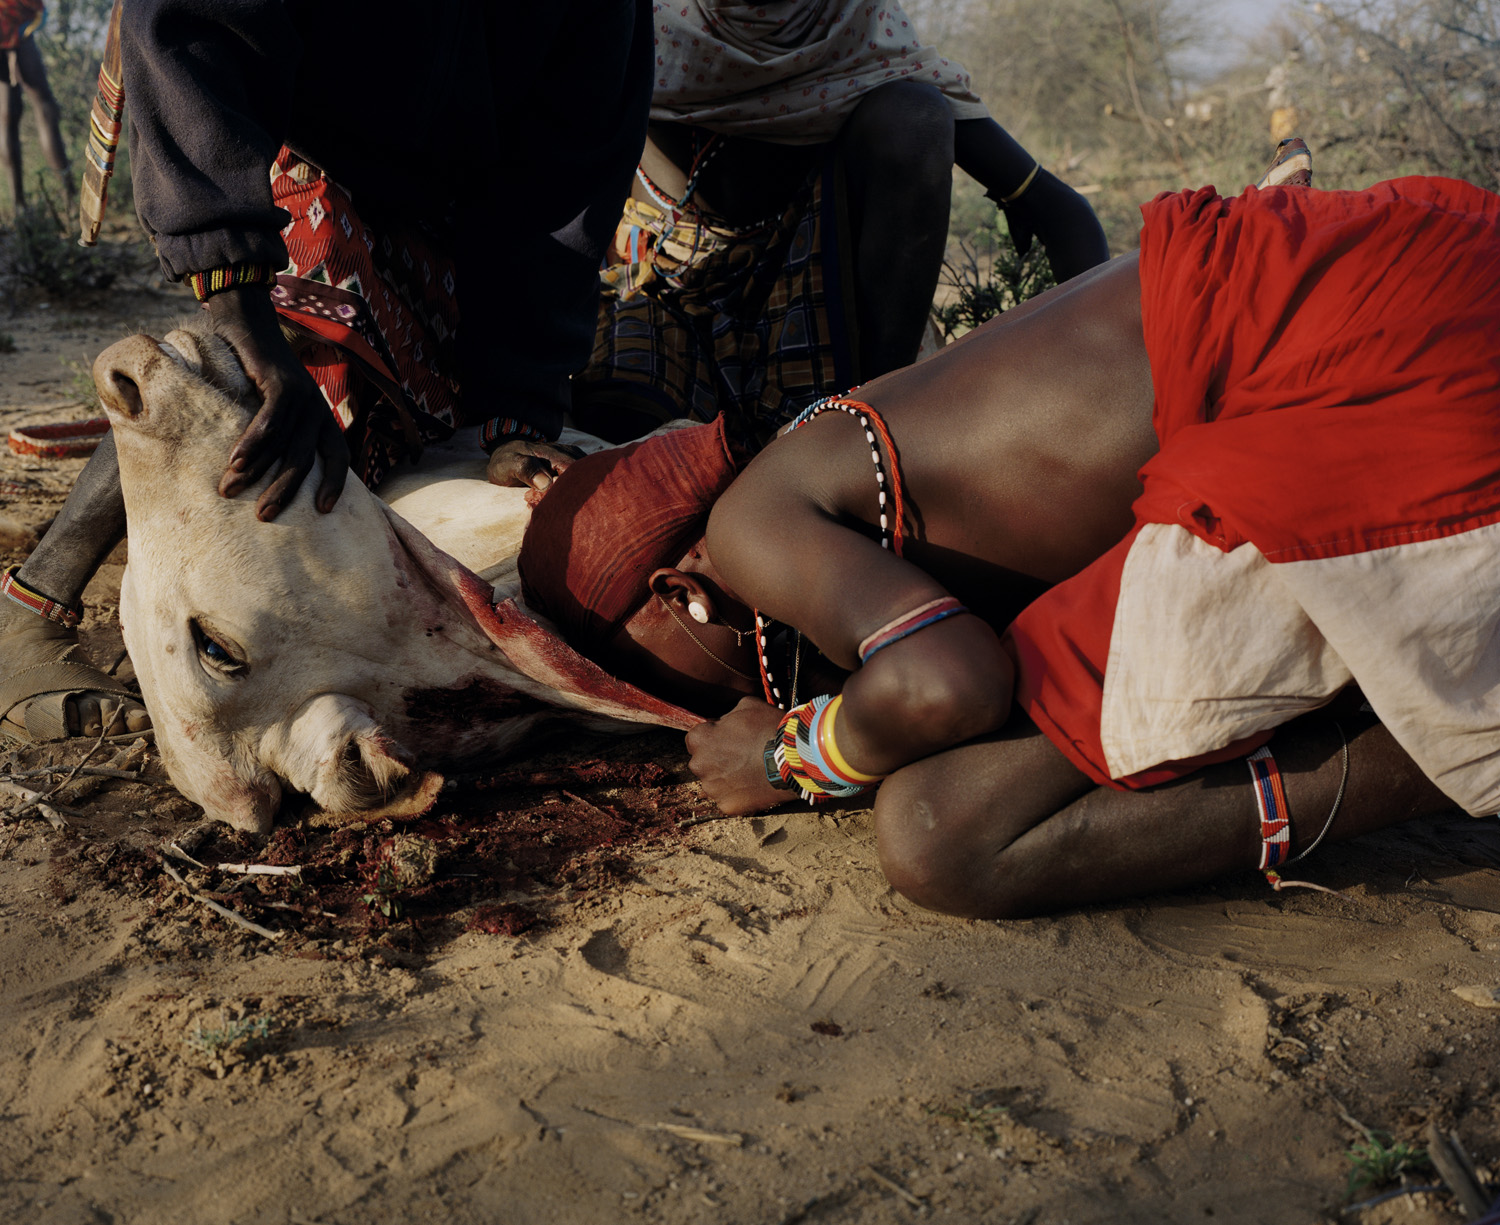 A samburu moran drinks the blood from the neck of a fresh slaughtered cow. A Samburu is a warrior for 13 years, during which time he lives completely in the bush with his cattle, drinking blood from the cows, milk, and occasionally water, and eating meat.